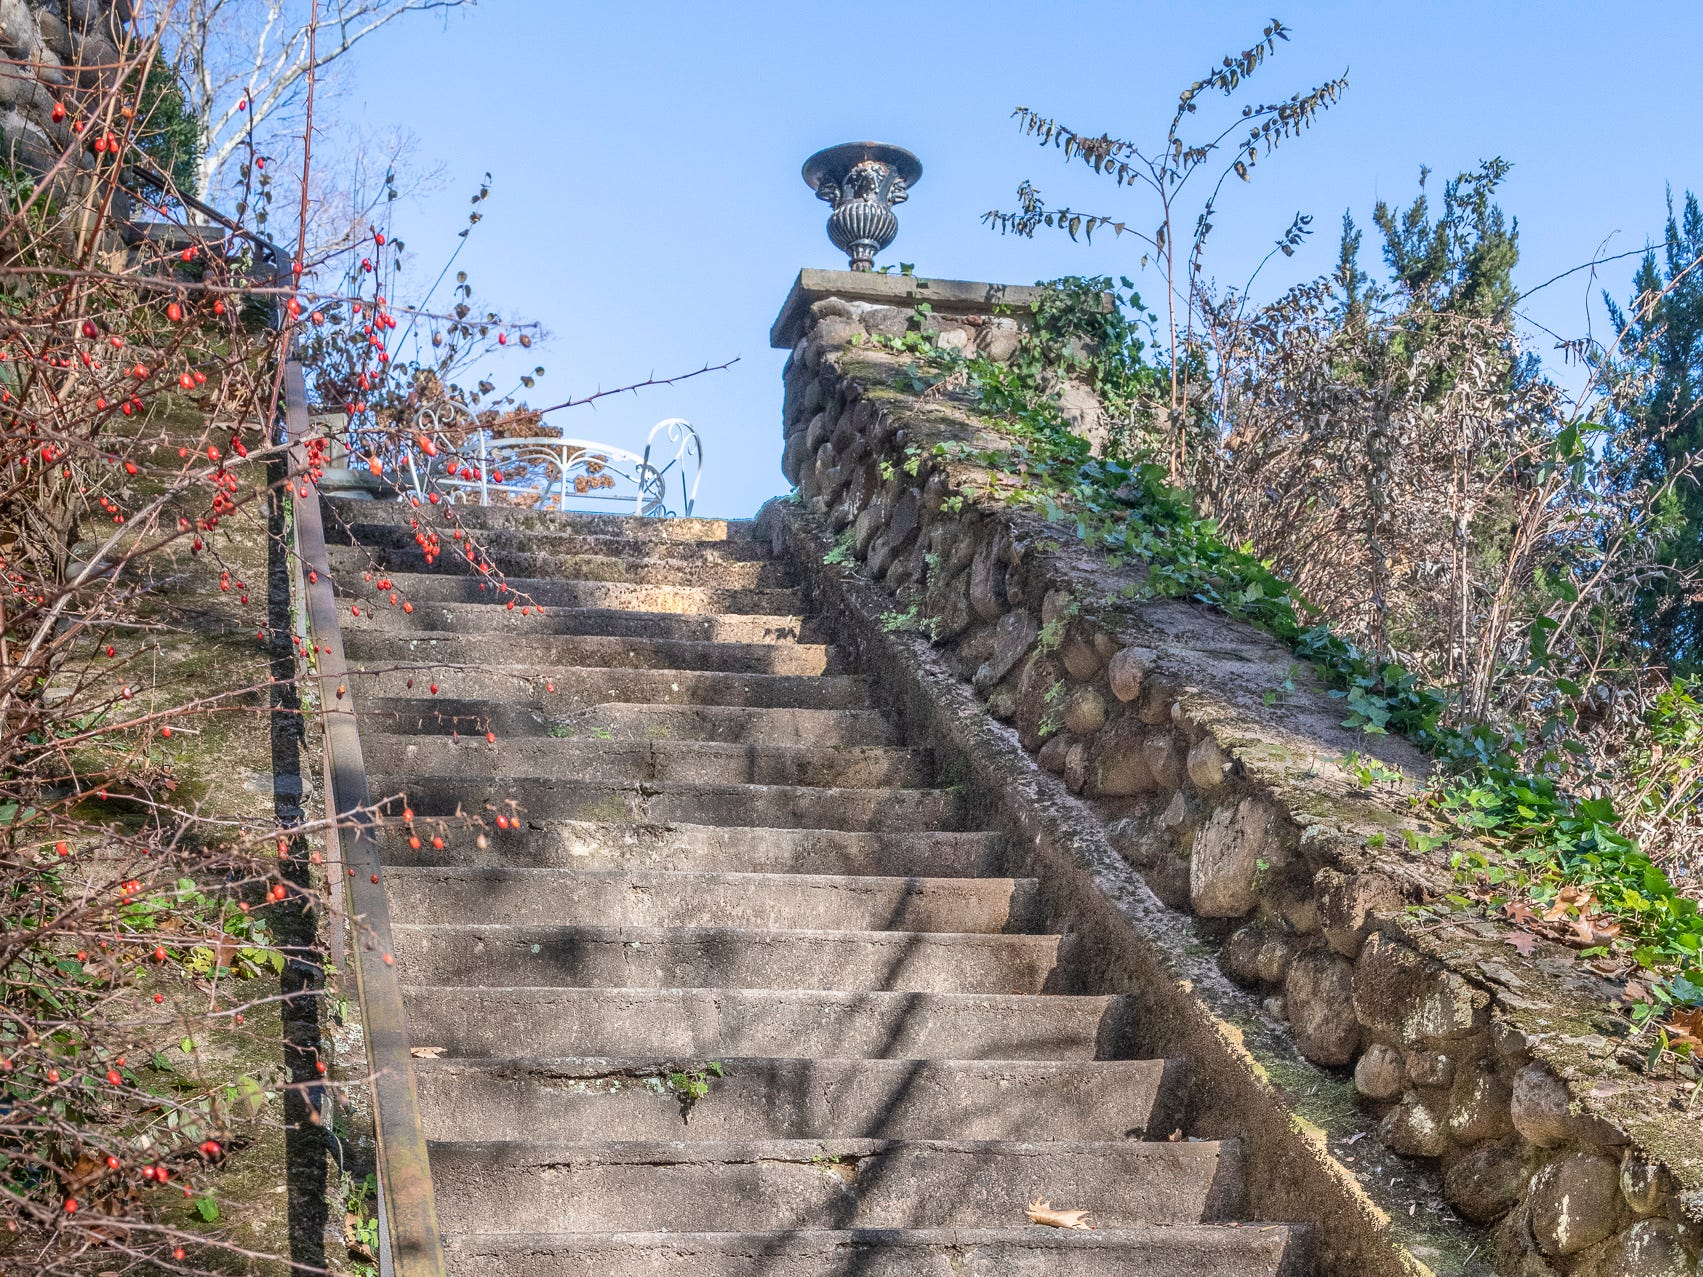 A staircase at Overledge in Grand View.